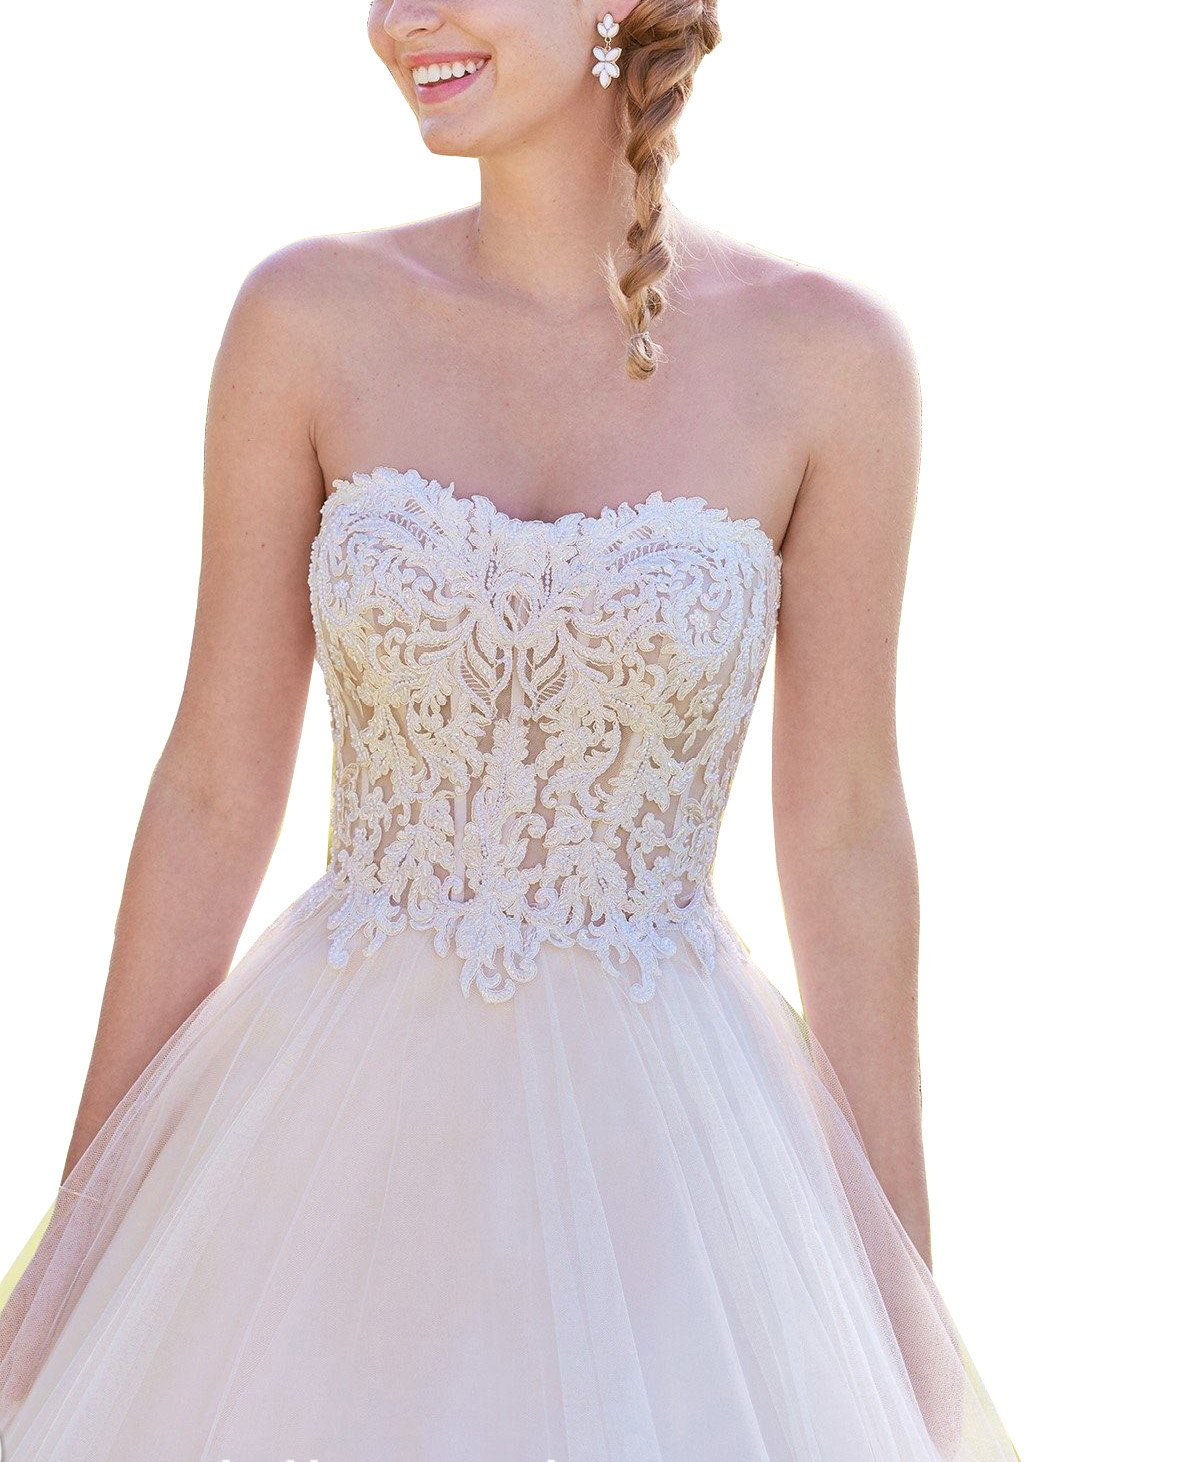 Lava-ring Women's Sweetheart Lace Embroidery Backless Princess Dress Wedding Ball Gown